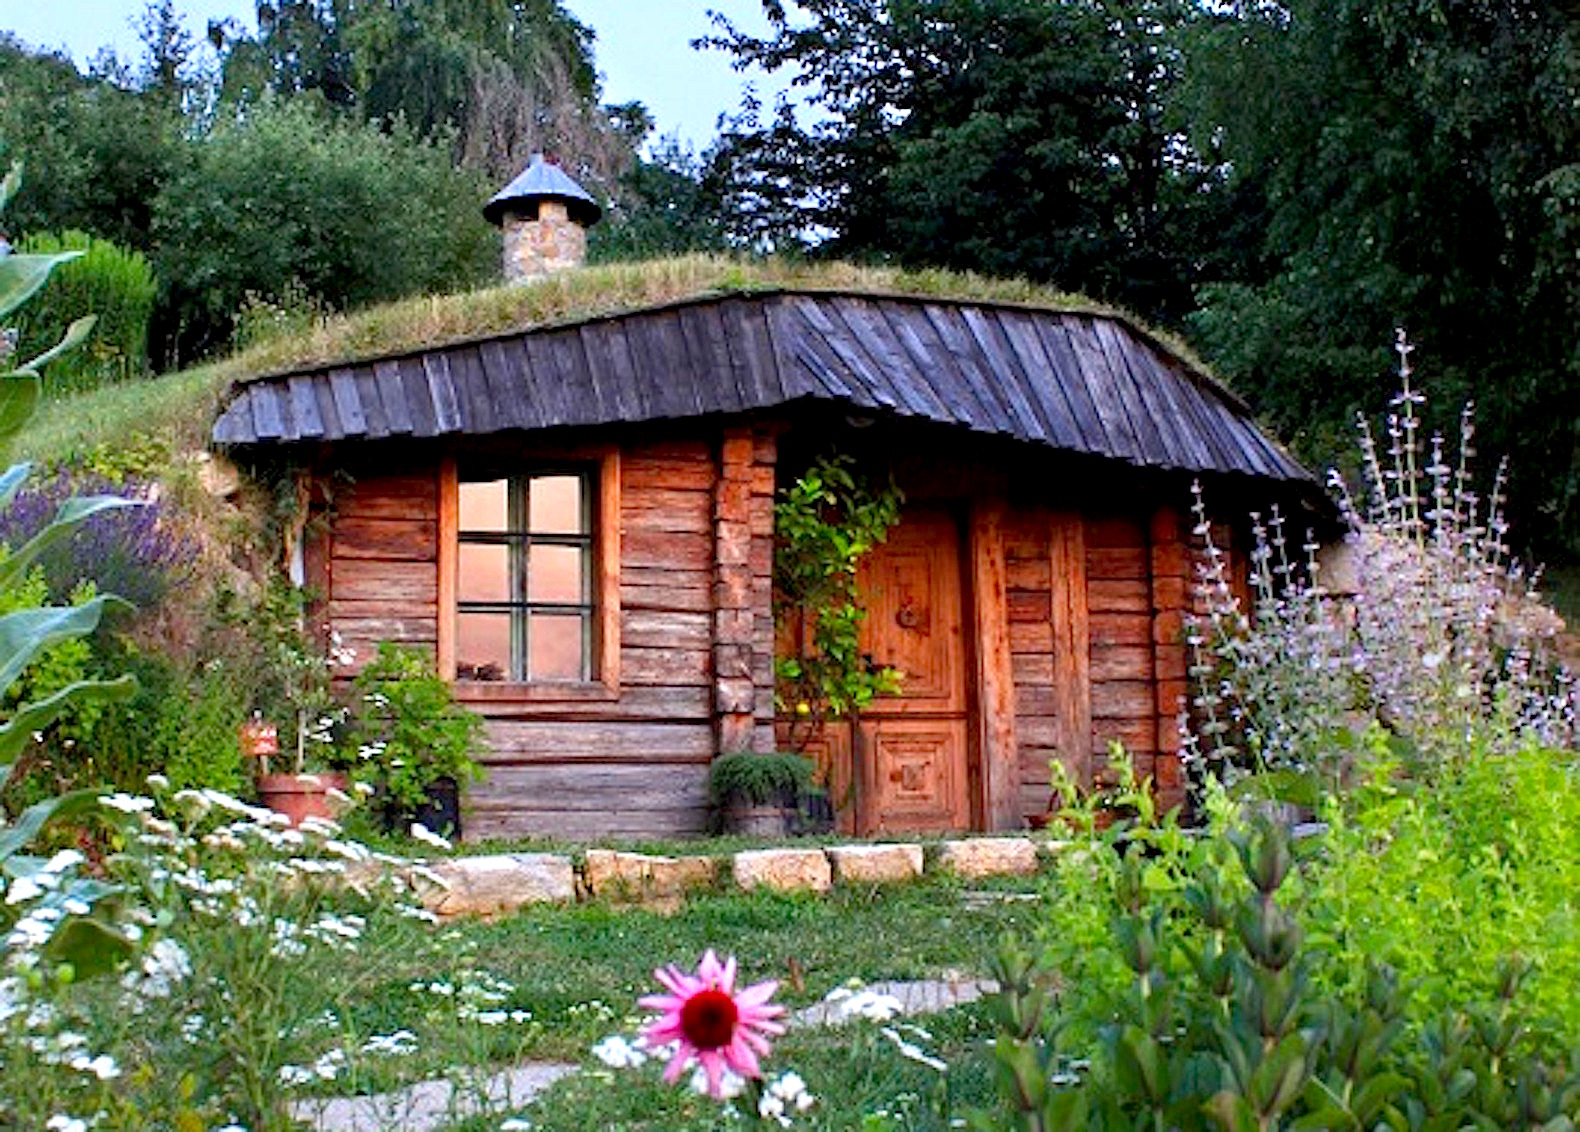 small wood home with grass roof surrounded by flowers